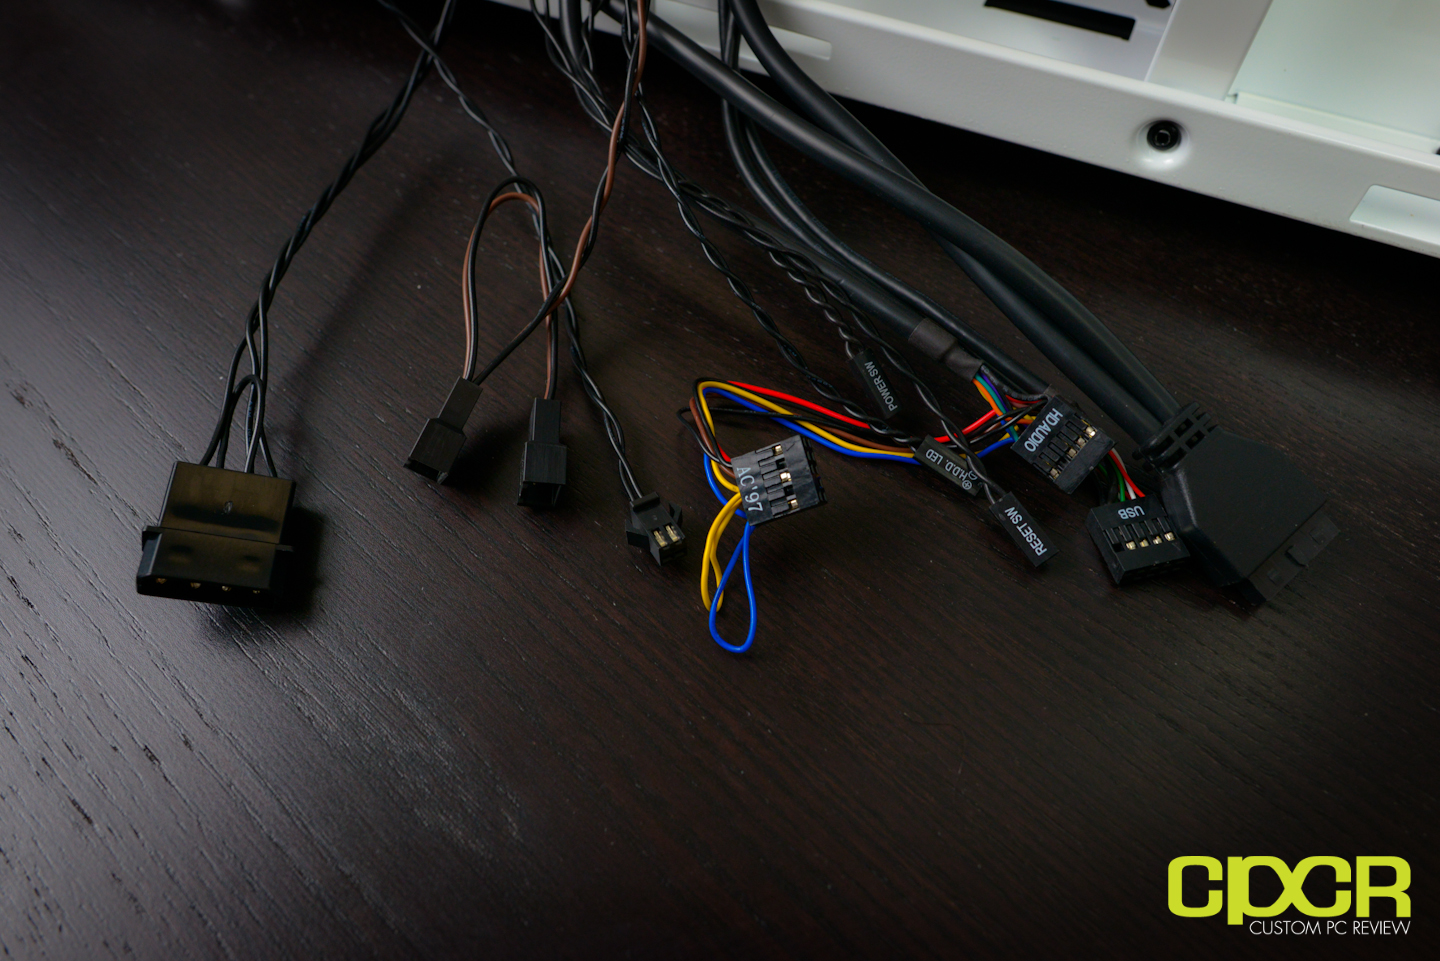 custom pc review cm storm stryker review 25 cm storm stryker review custom pc review cm storm trooper wiring diagram at honlapkeszites.co